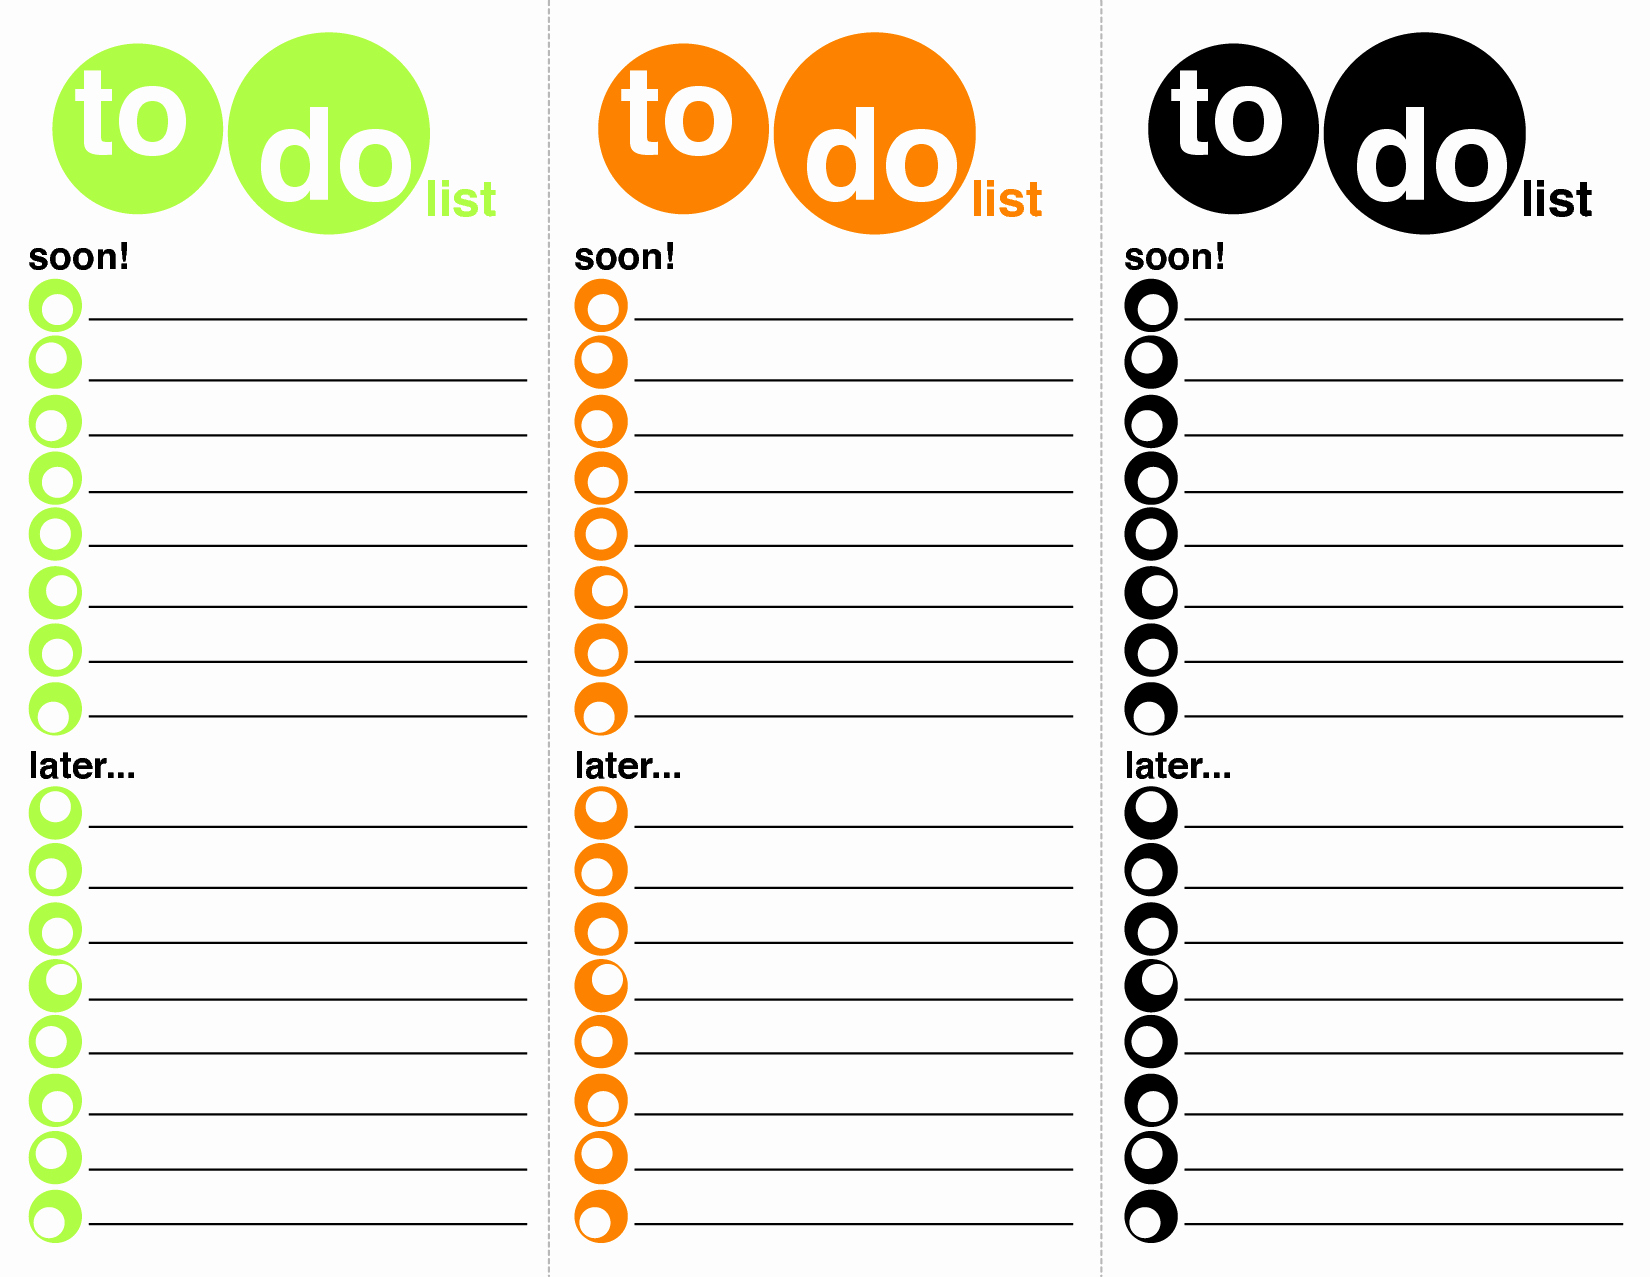 Things to Do List Printable Best Of 40 Printable to Do List Templates